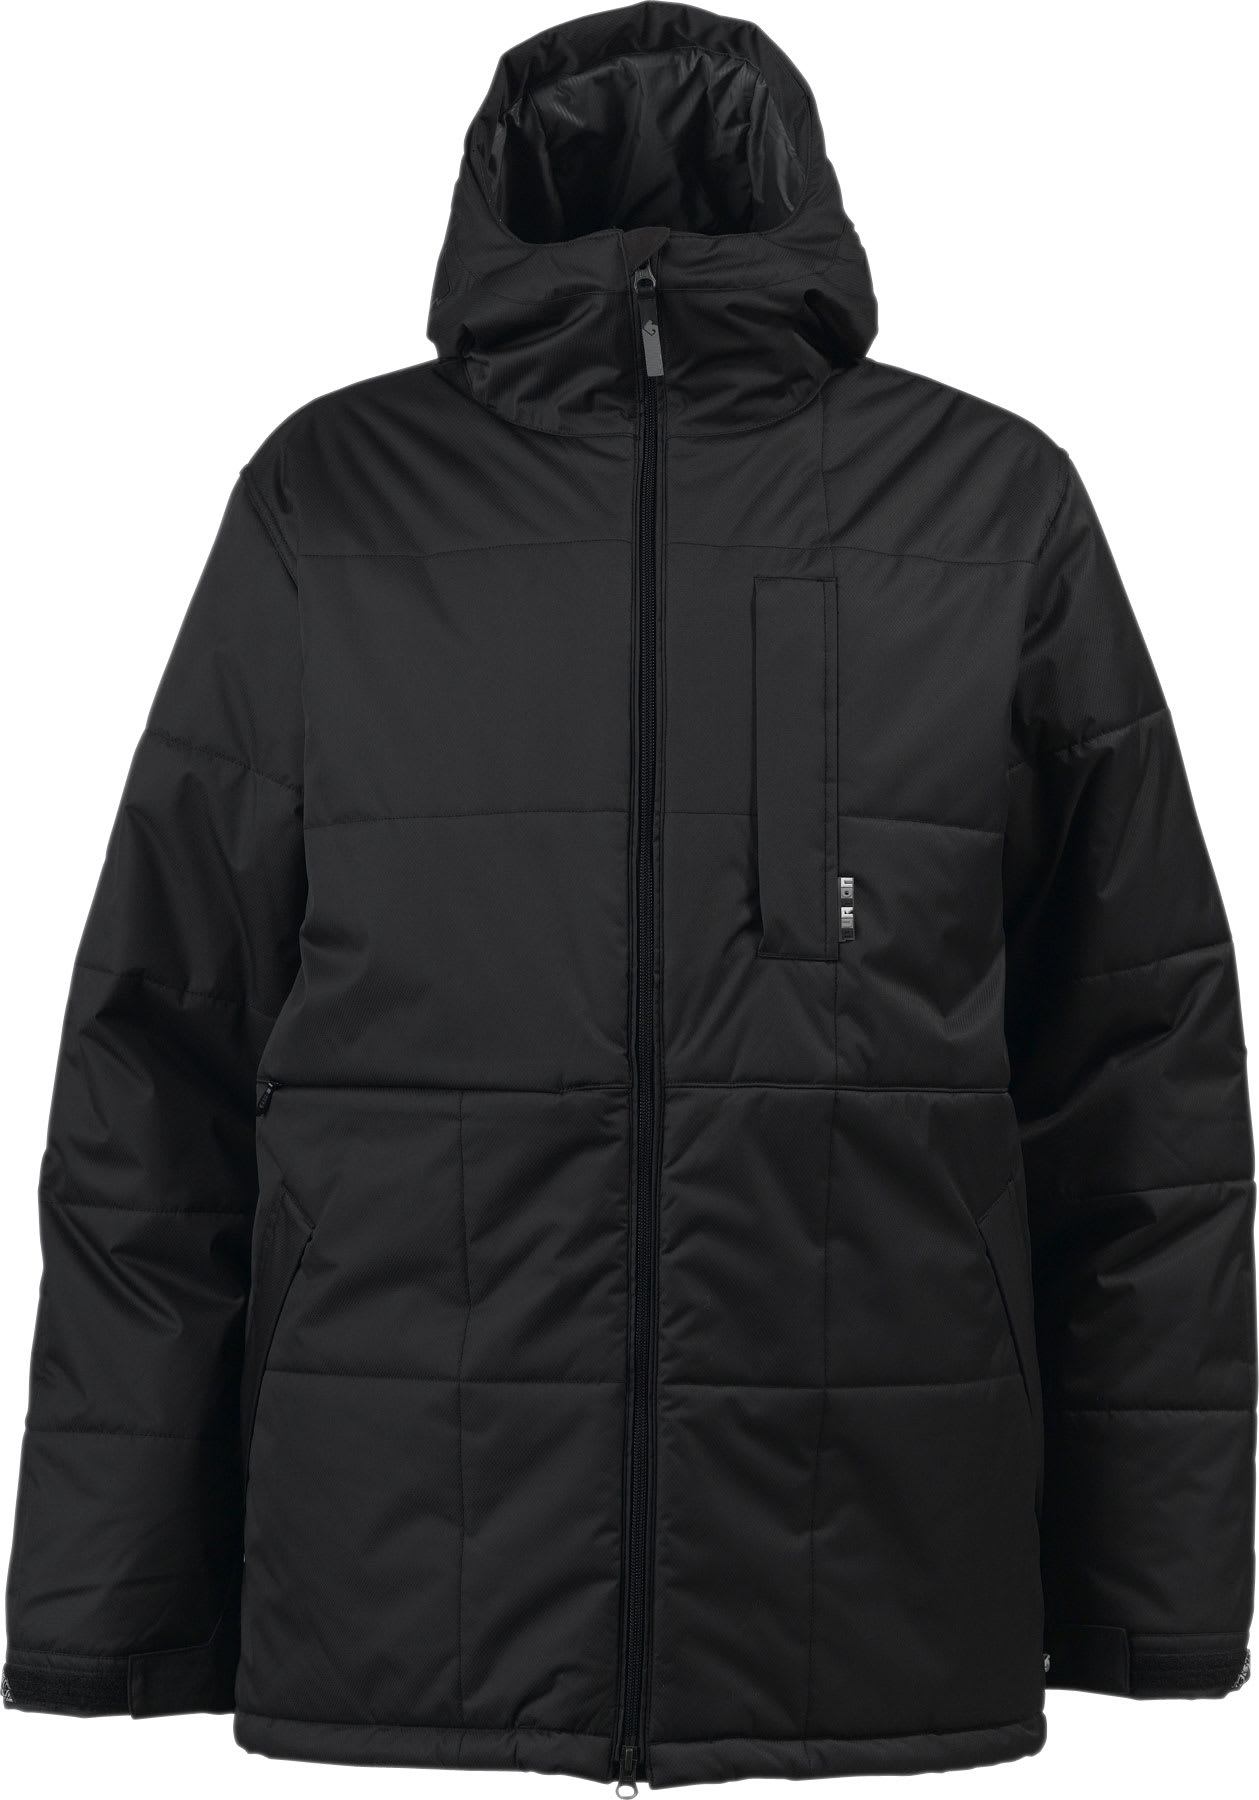 Shop for Burton Ante Up Puffy Snowboard Jacket True Black - Men's